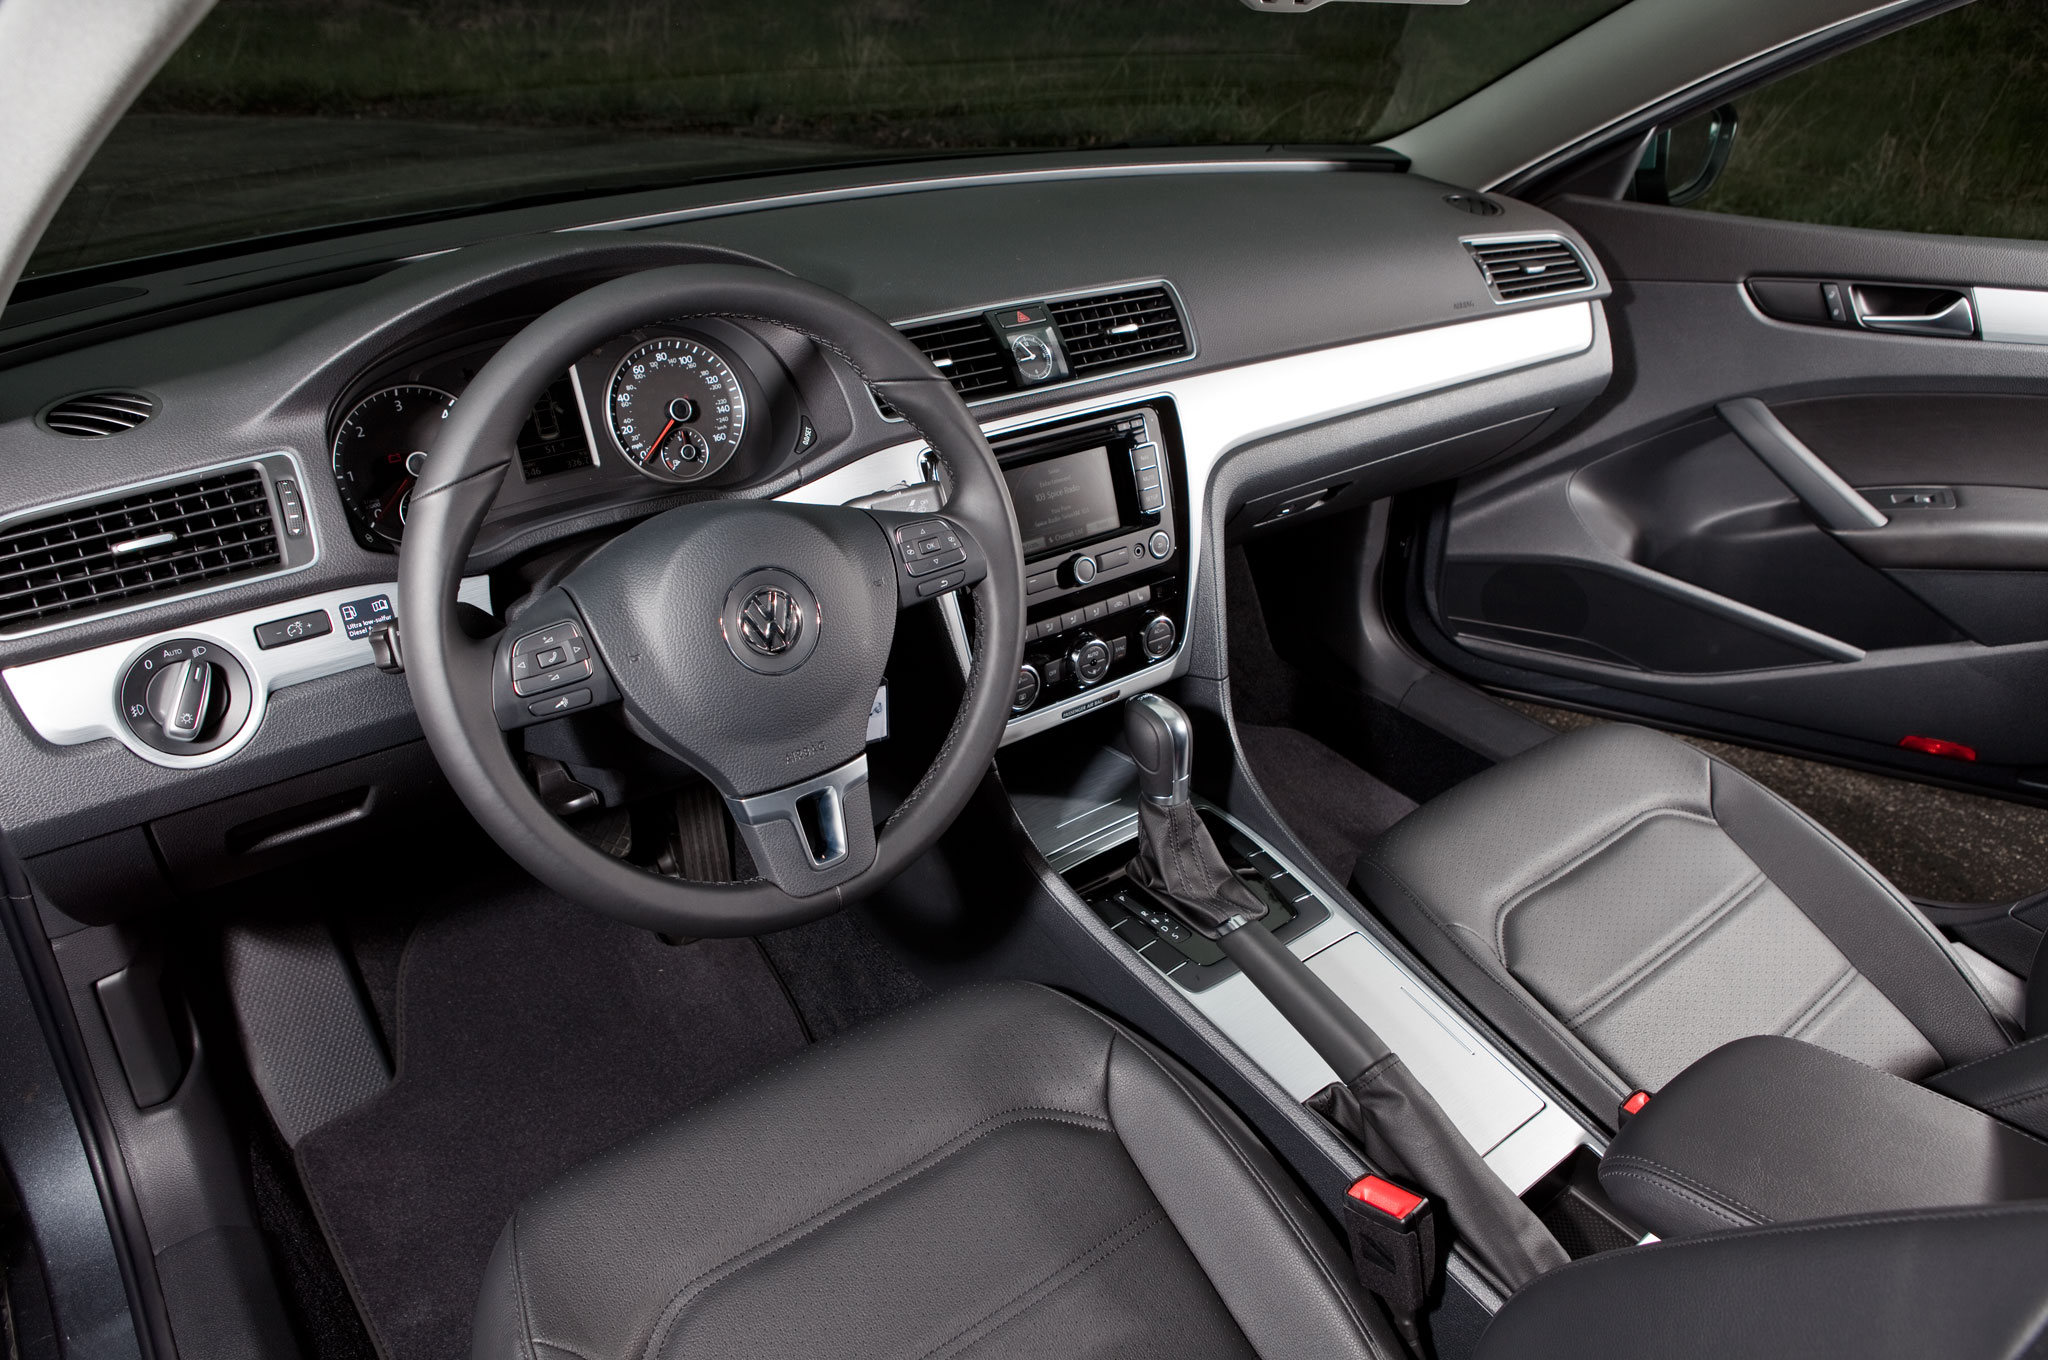 cc line r s featured taylors show taylor ride ur img volkswagen interior james vw